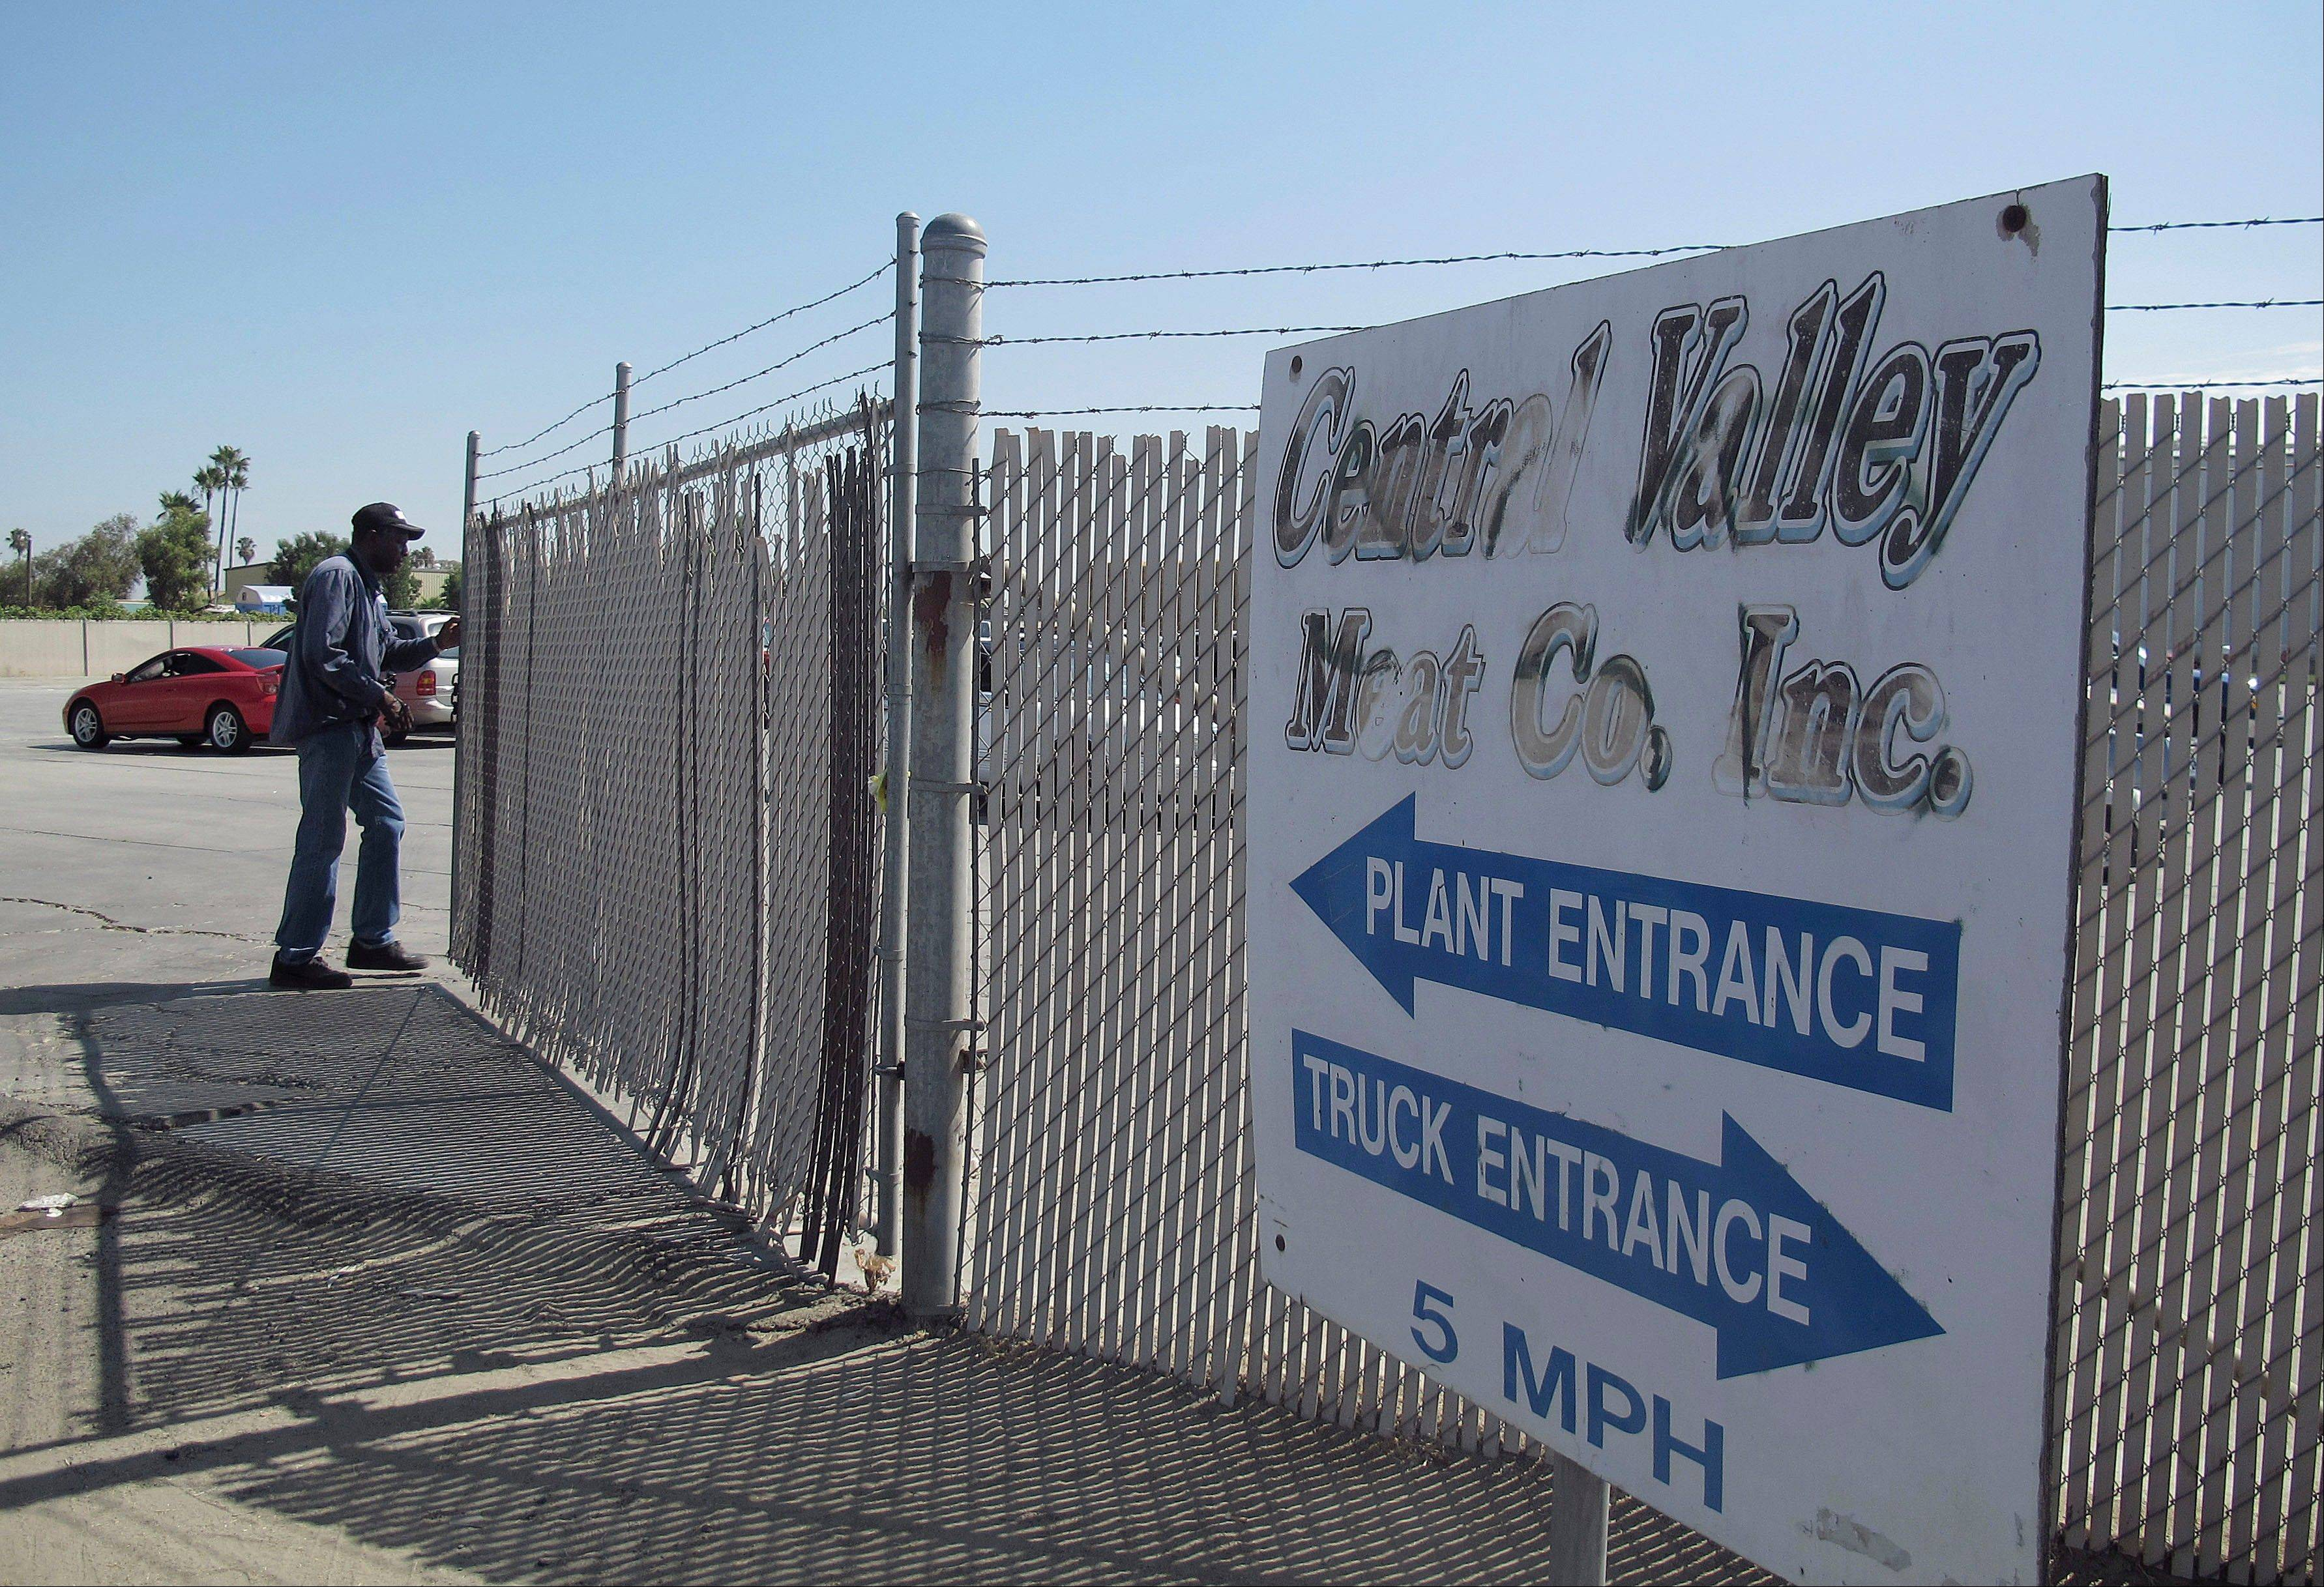 A security guard opens the gate at the Central Valley Meat Co., the California slaughterhouse shut down by federal regulators after they received video showing dairy cows being repeatedly shocked and shot before being slaughtered.